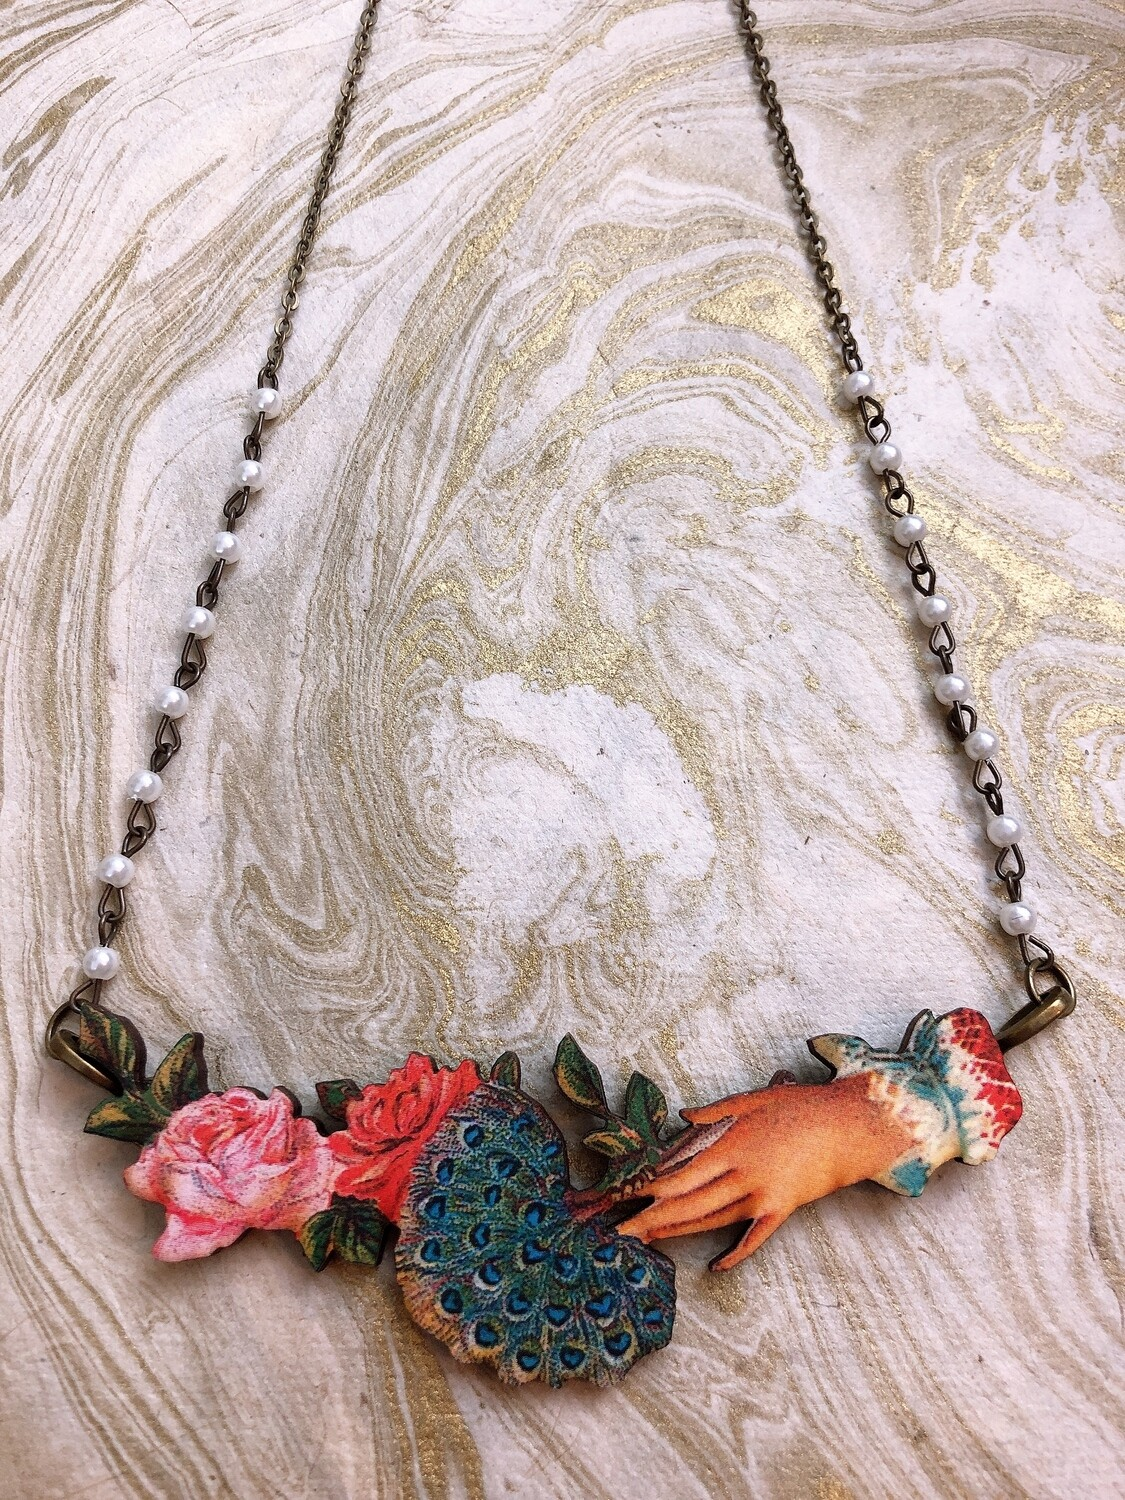 wood necklace (hand with roses and feathers)